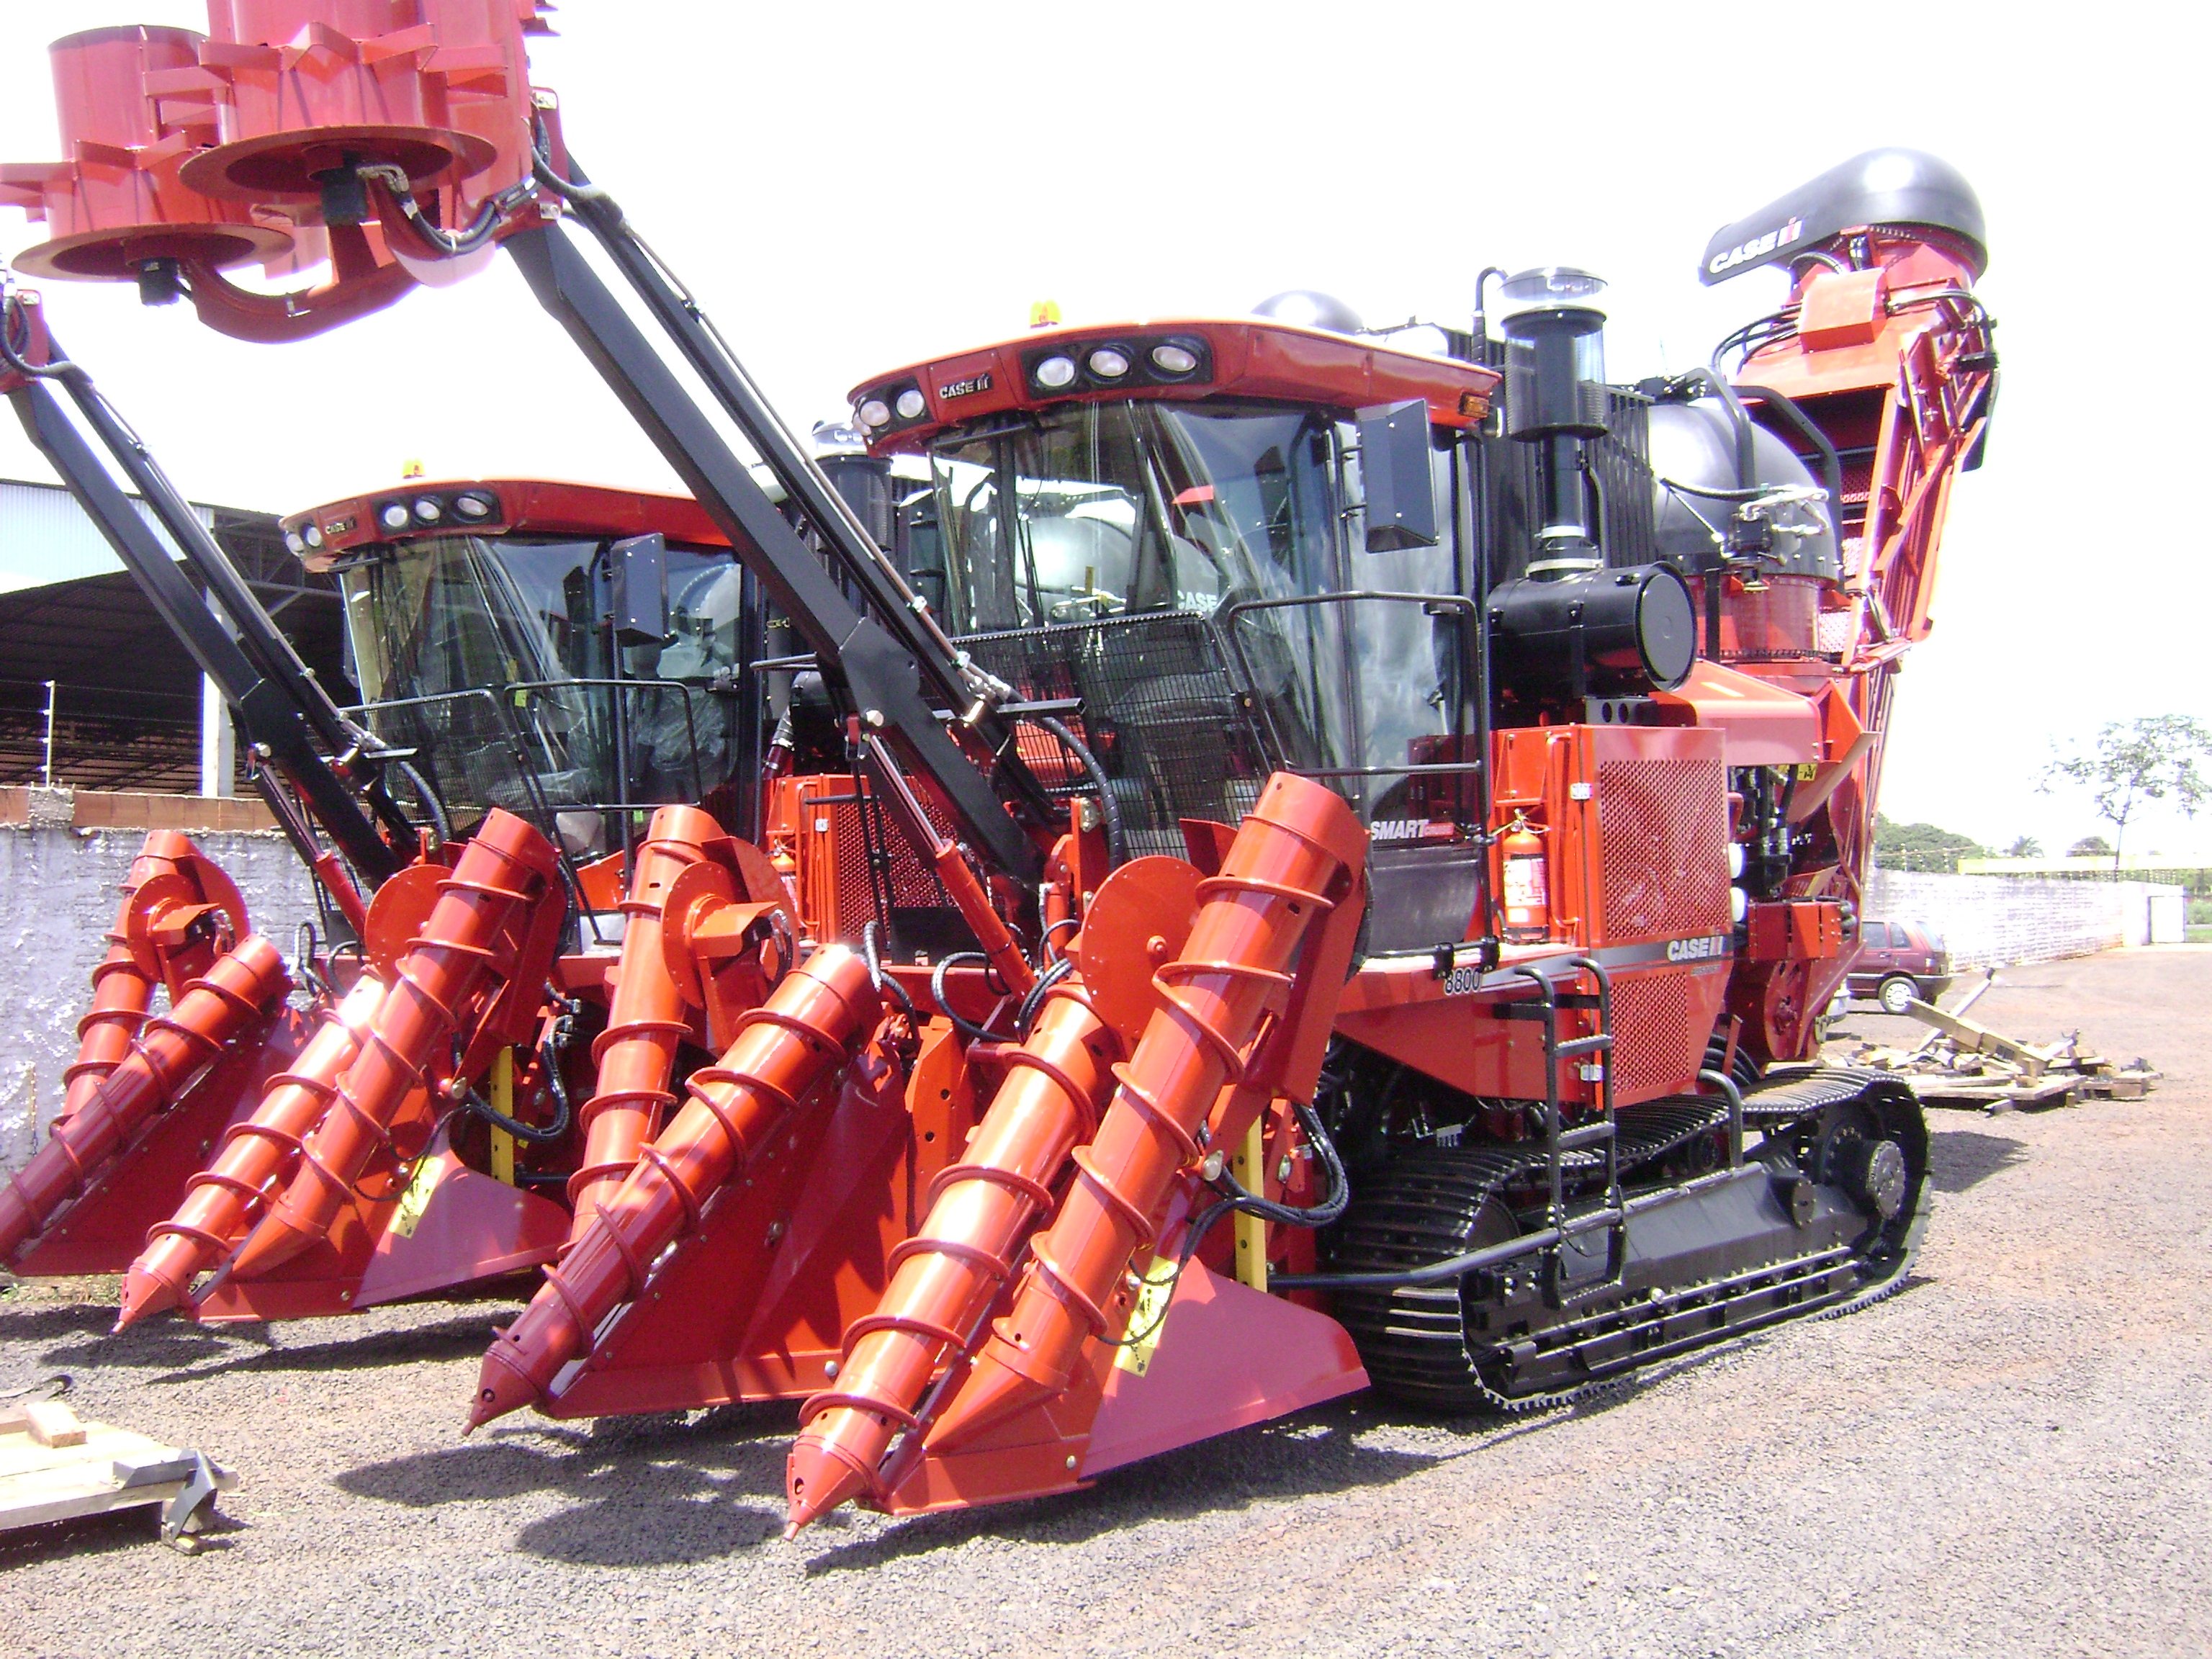 Cummins For Sale >> SUGAR CANE HARVESTERS FOR SALE